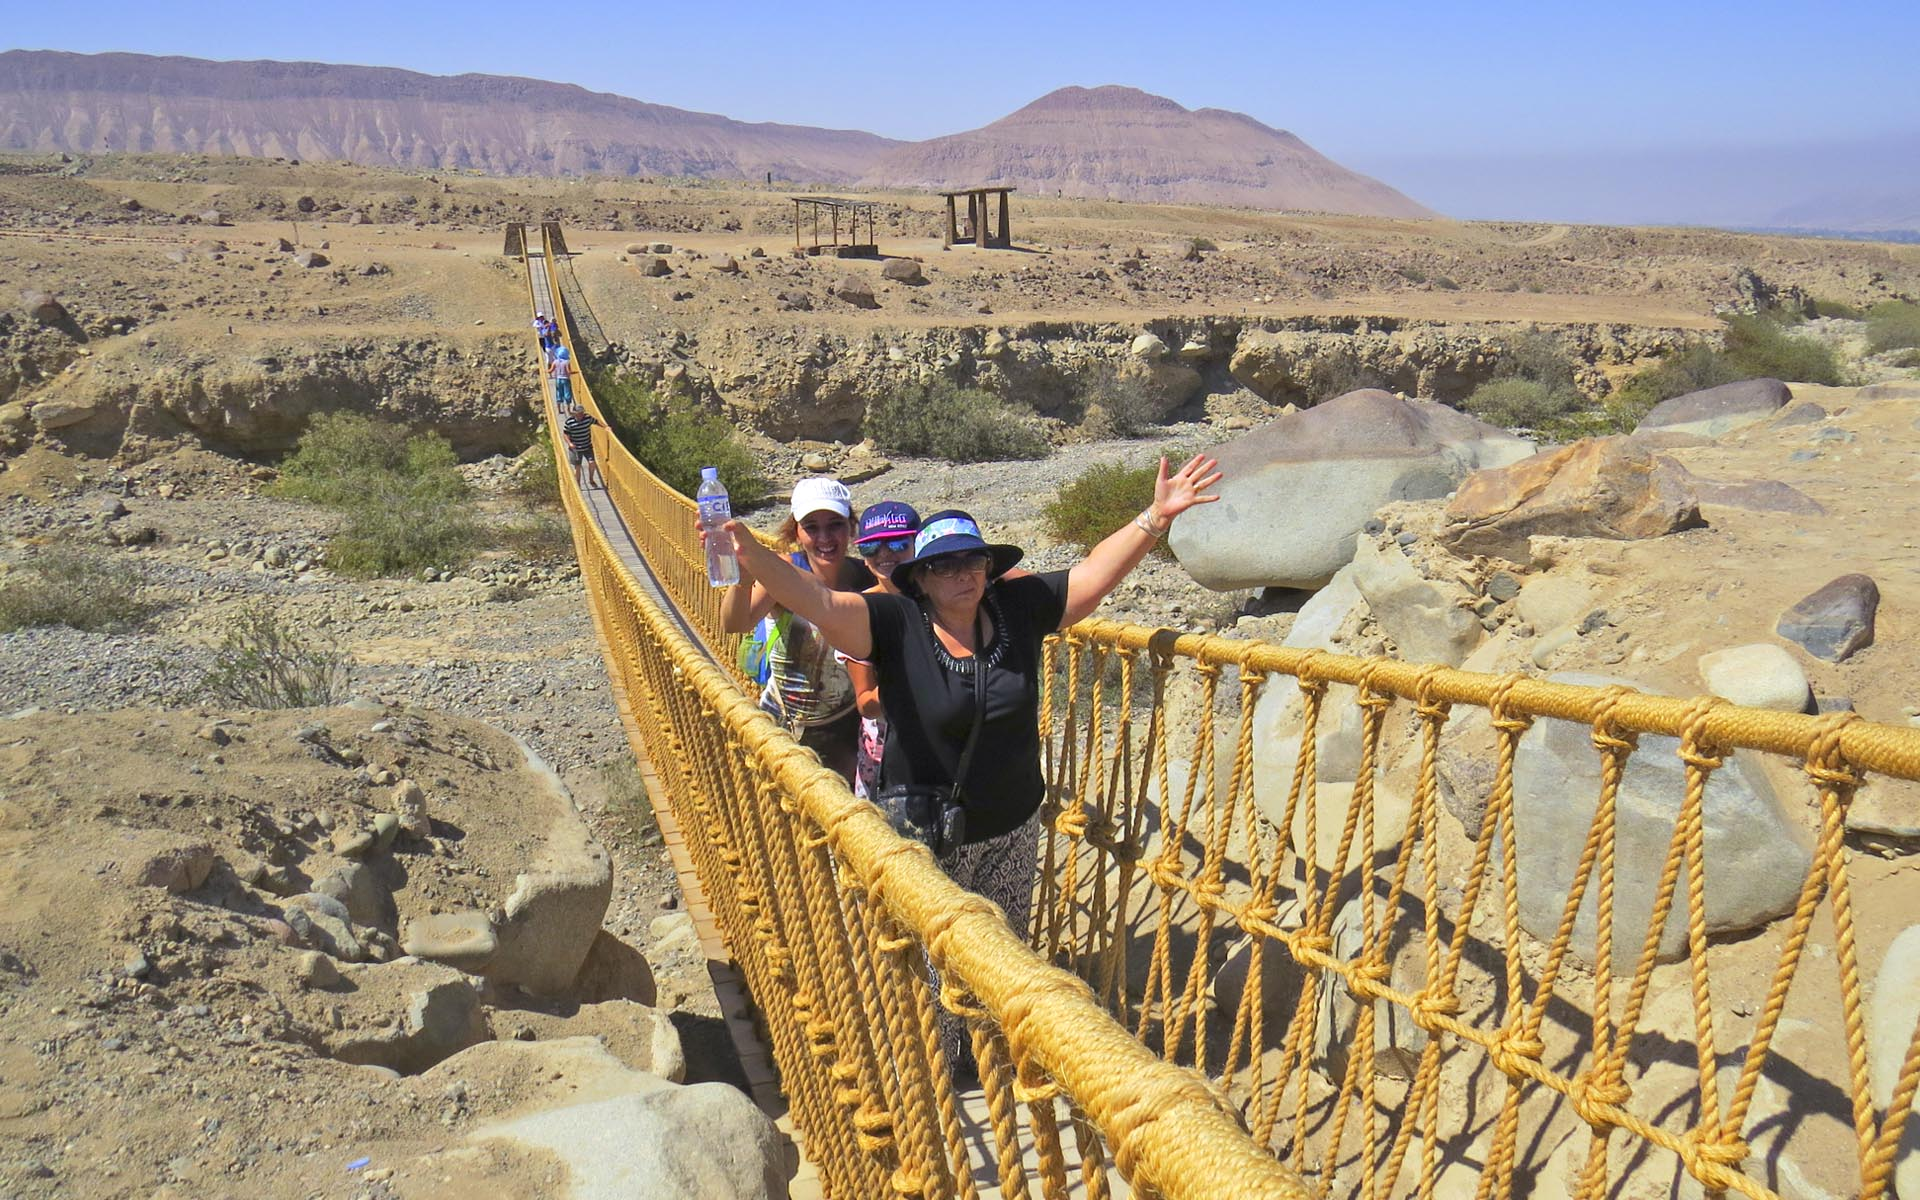 Tourist Destinations in Peru Tours: Valle Viejo Tour full day Tacna. The best tourist packages in Peru and South America.